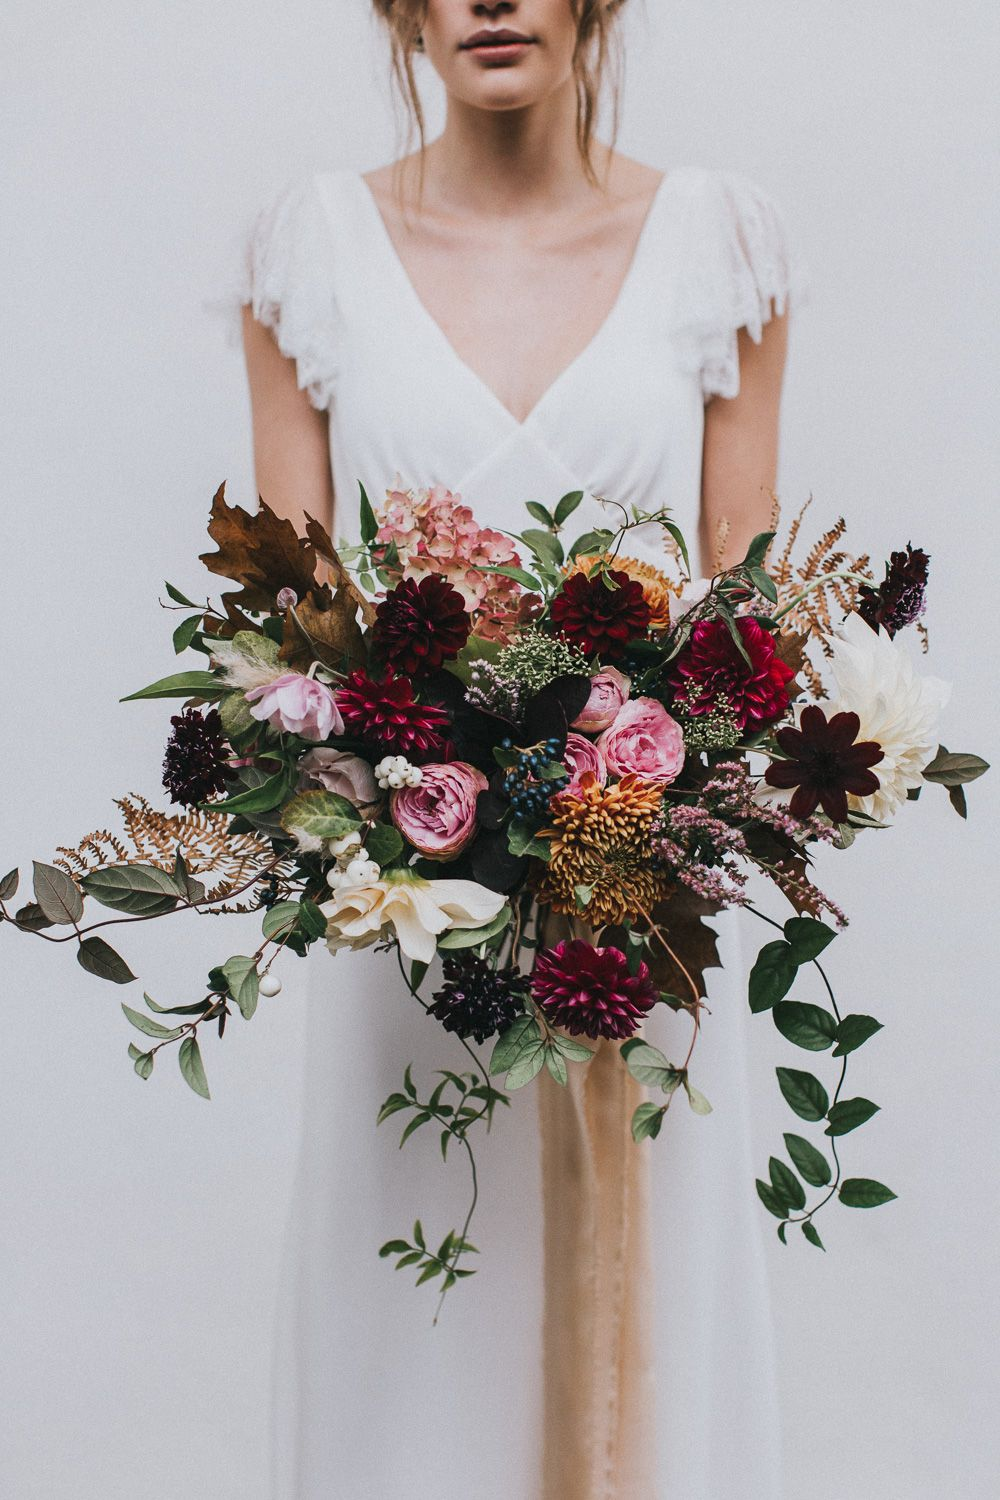 stylish autumnal wedding shoot from top uk wedding suppliers